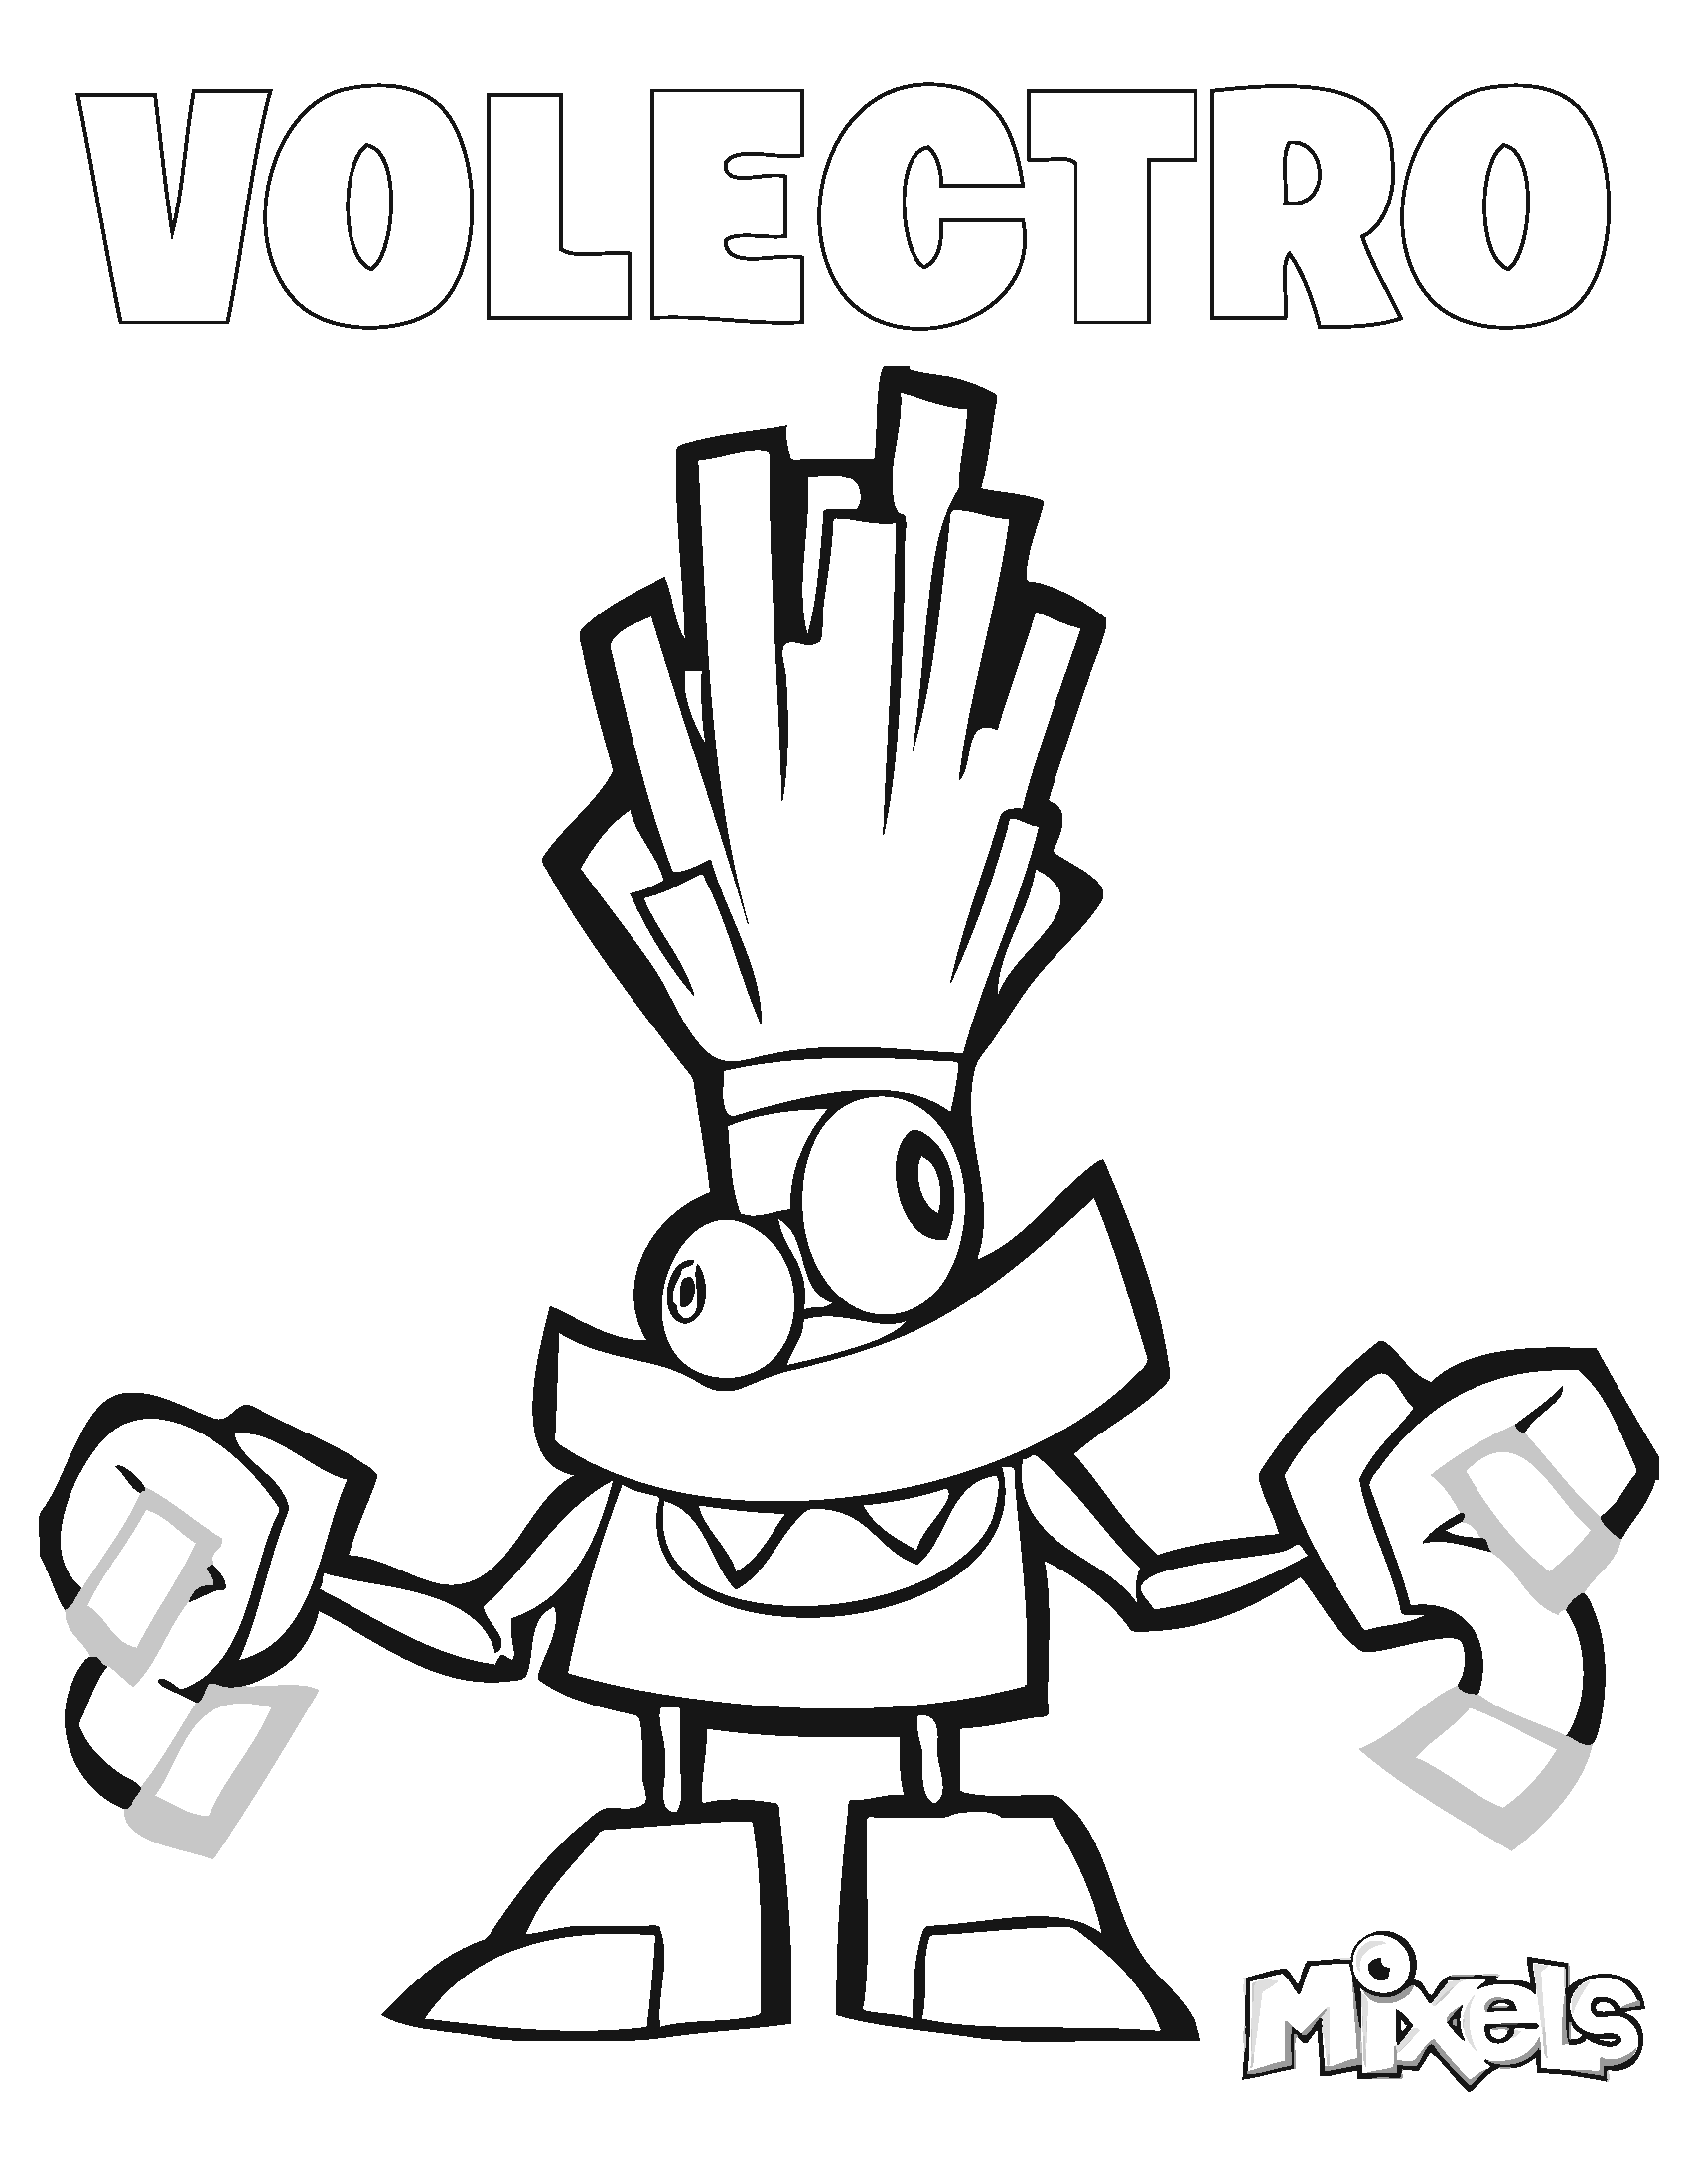 Mixels Coloring Page Volectro Lego Birthday Party Lego Movie Party Super Coloring Pages